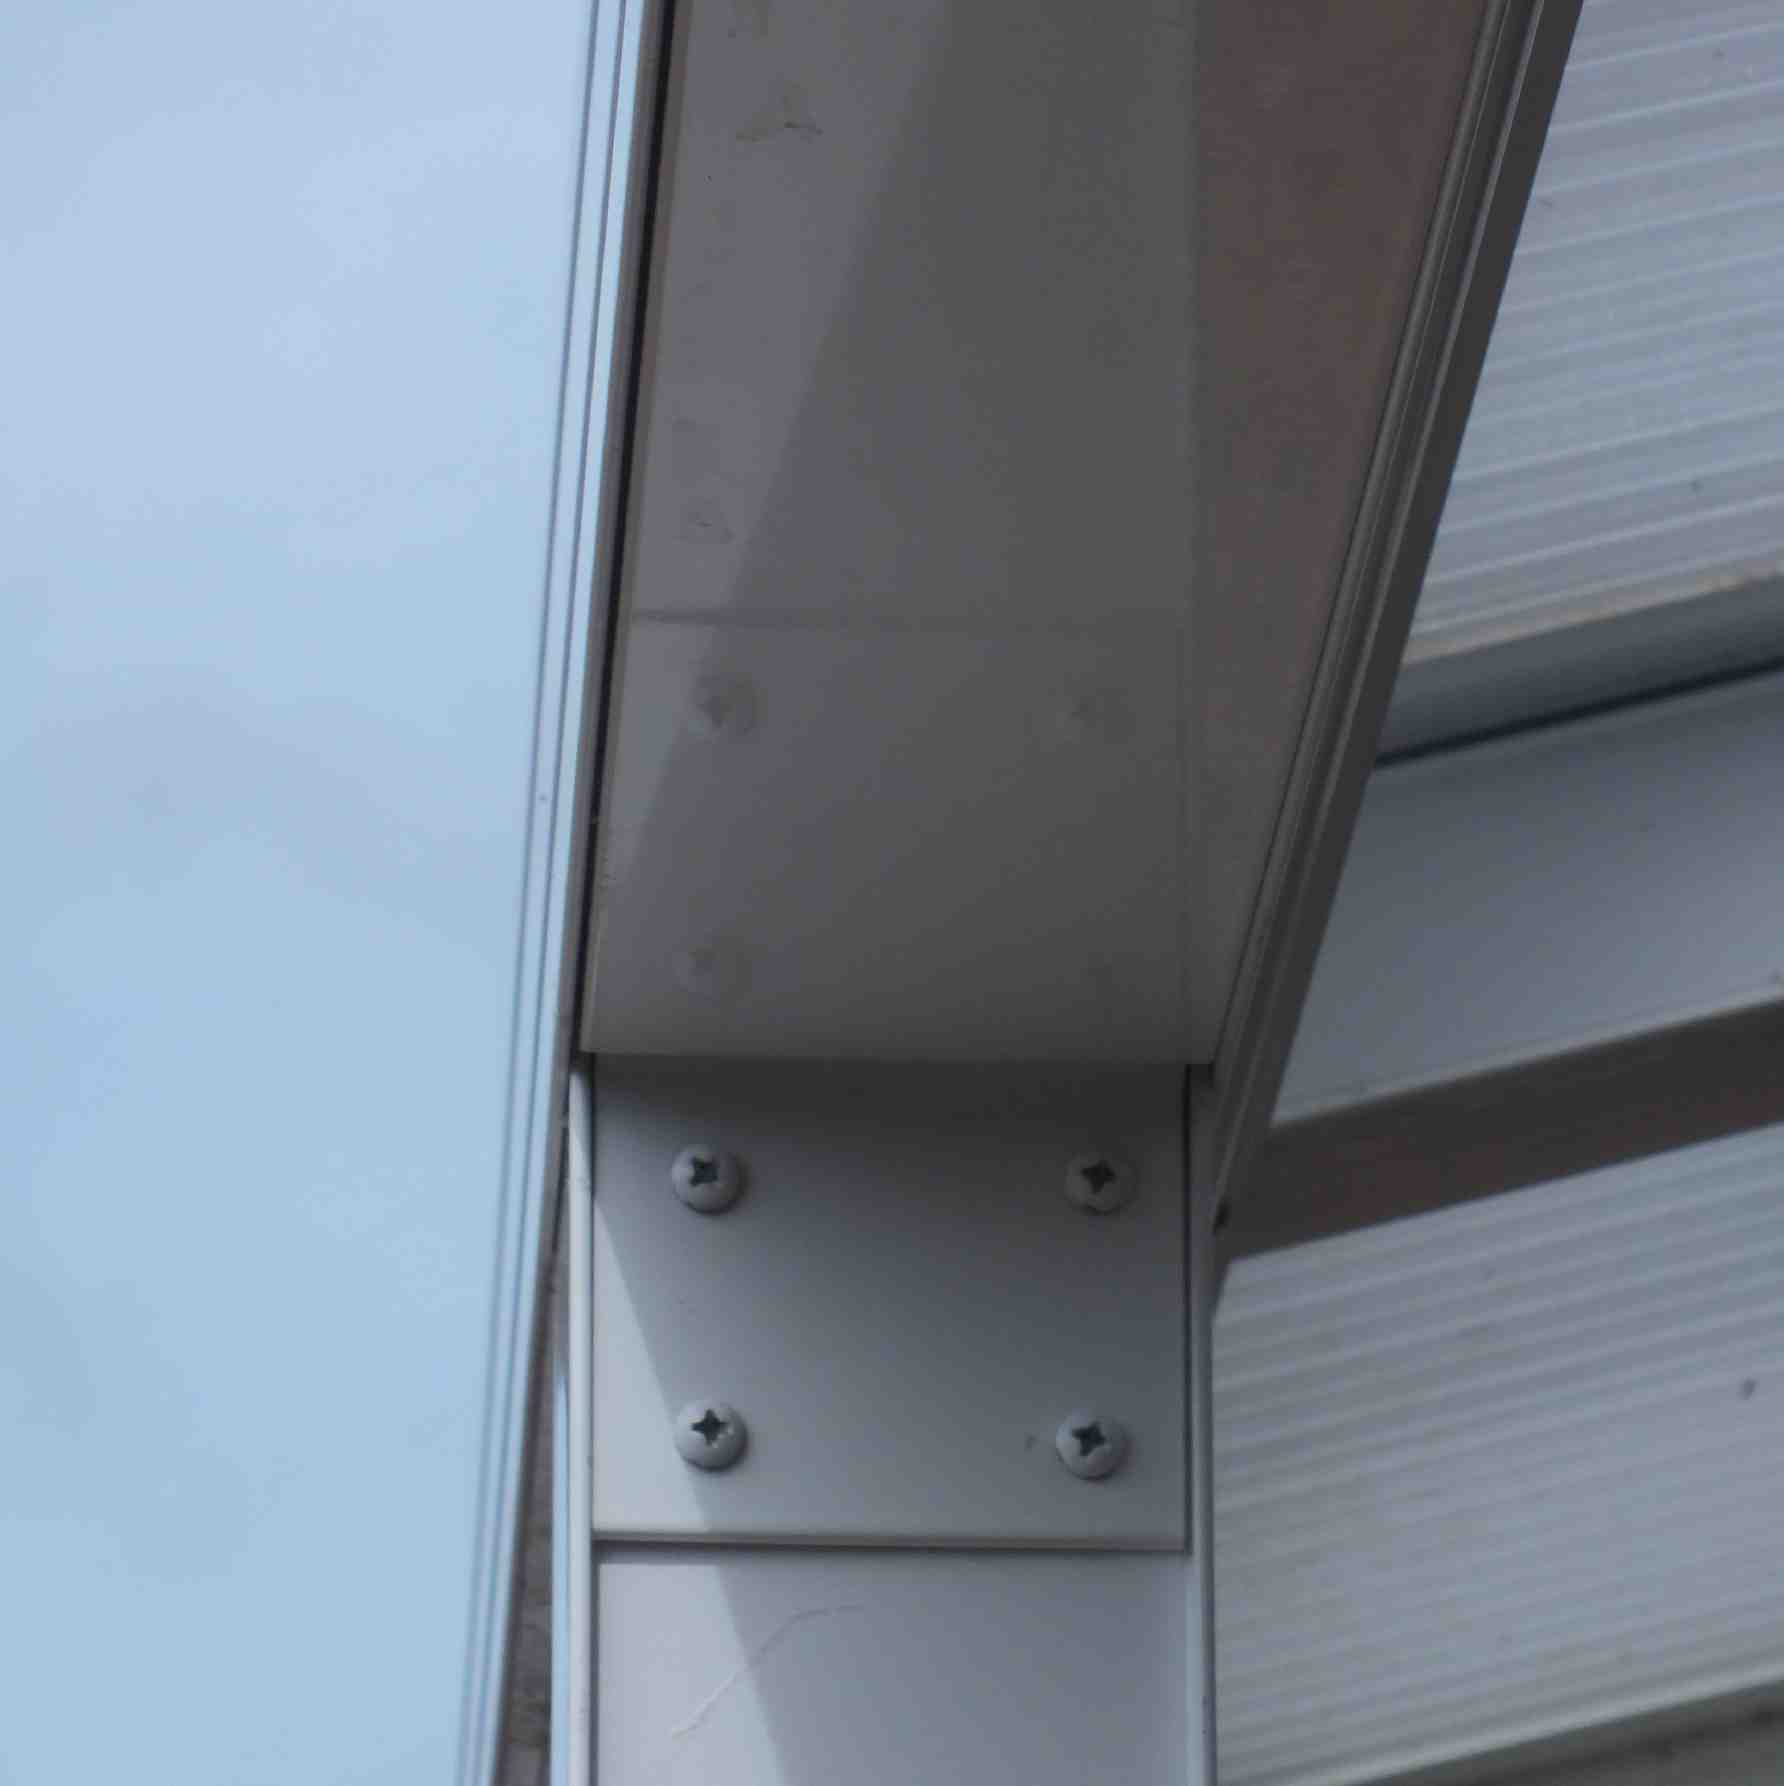 Affordable Omega Verandah with 6mm Glass Clear Plate Polycarbonate Glazing - 7.0m (W) x 3.0m (P), (4) Supporting Posts